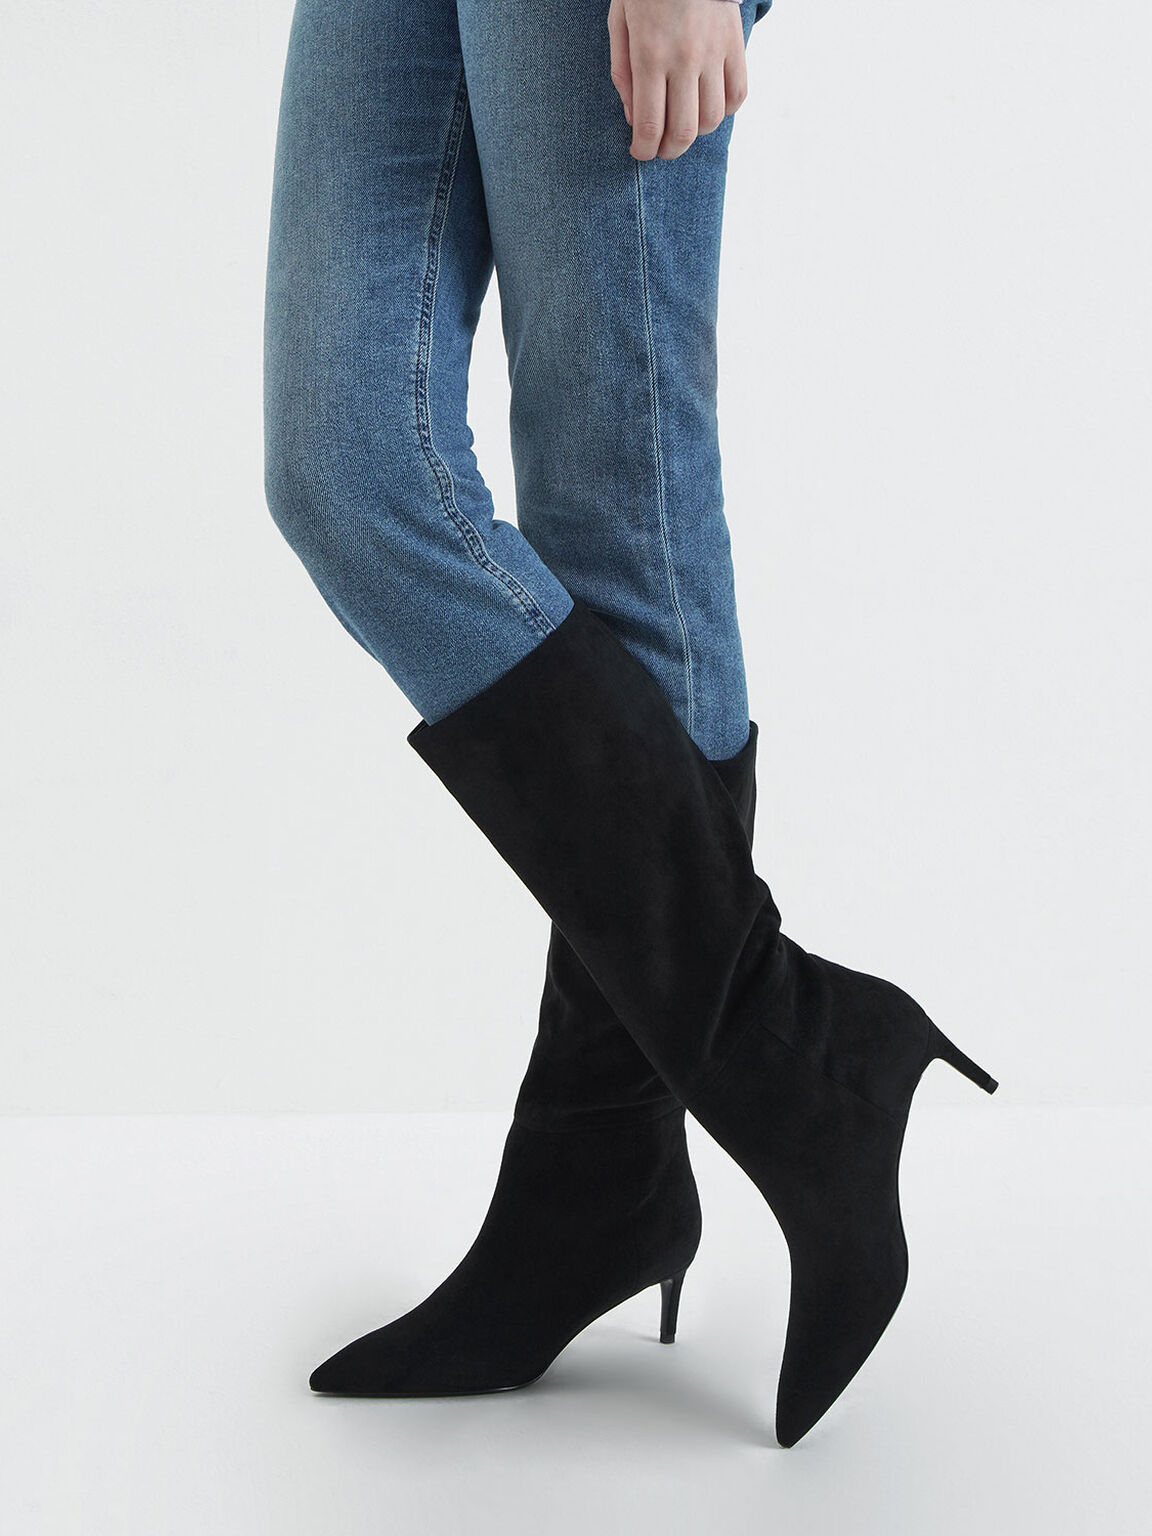 Textured Knee High Boots, Black Textured, hi-res